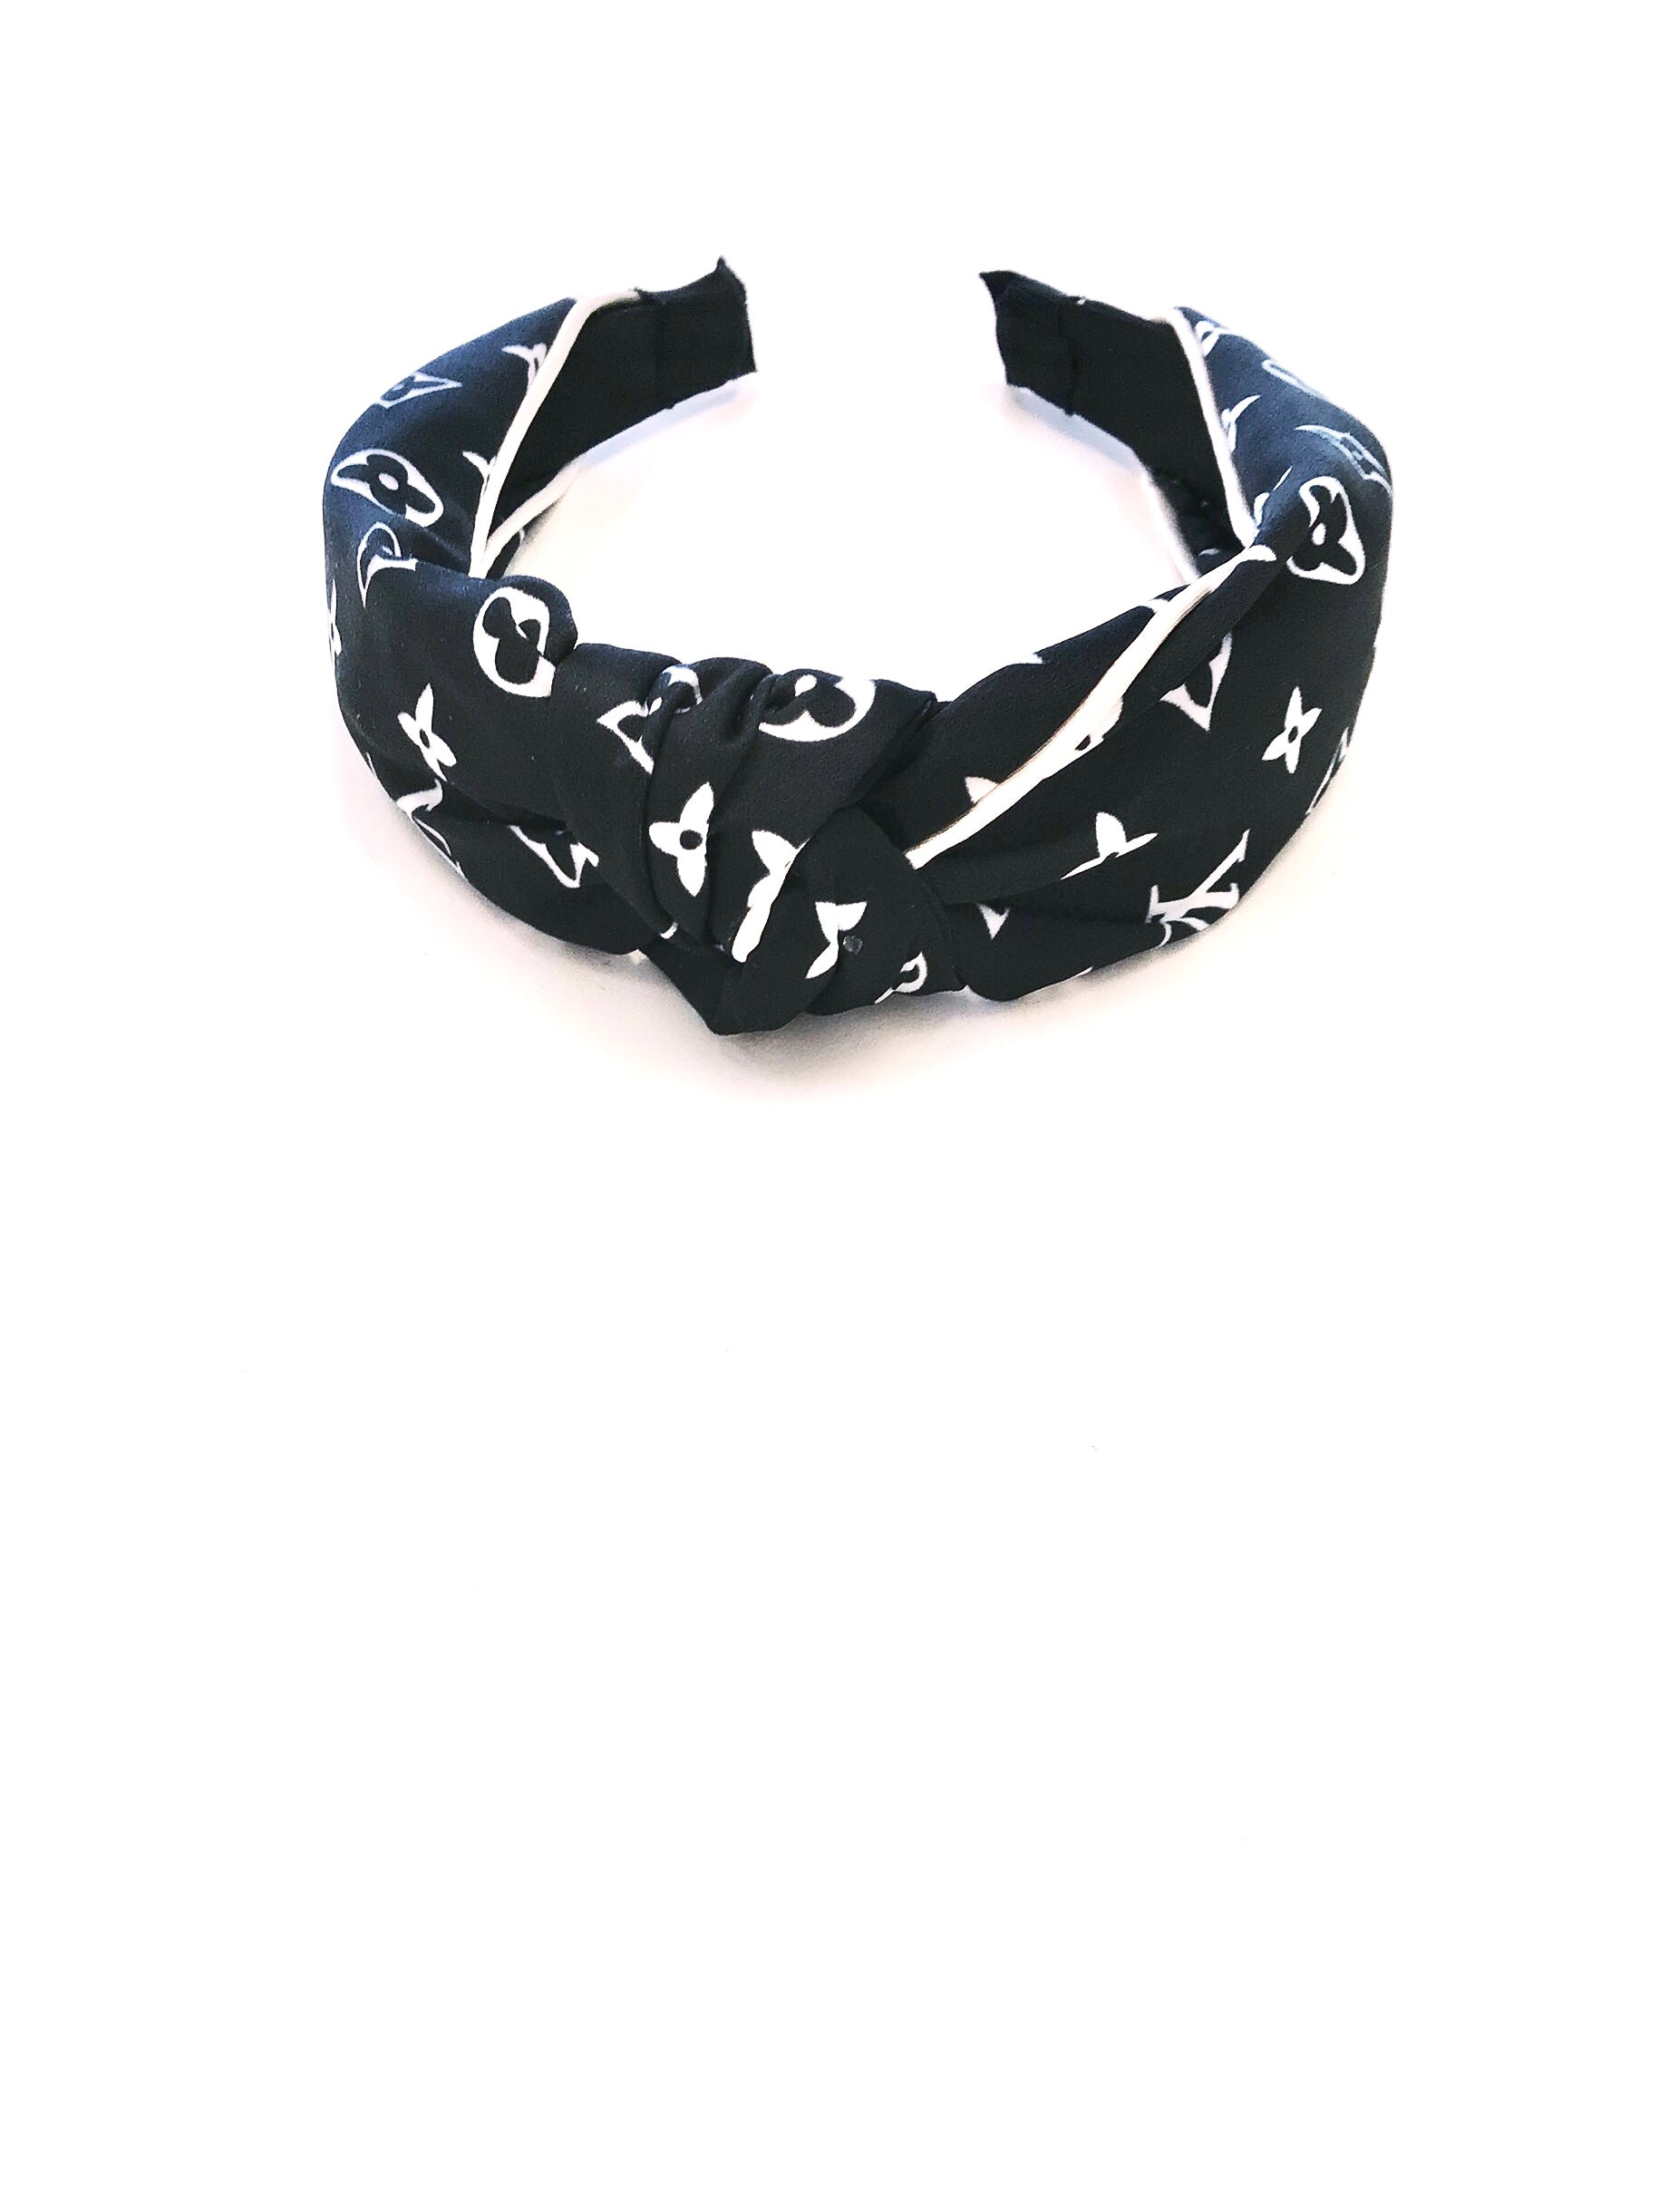 LV Inspired Knot Headband